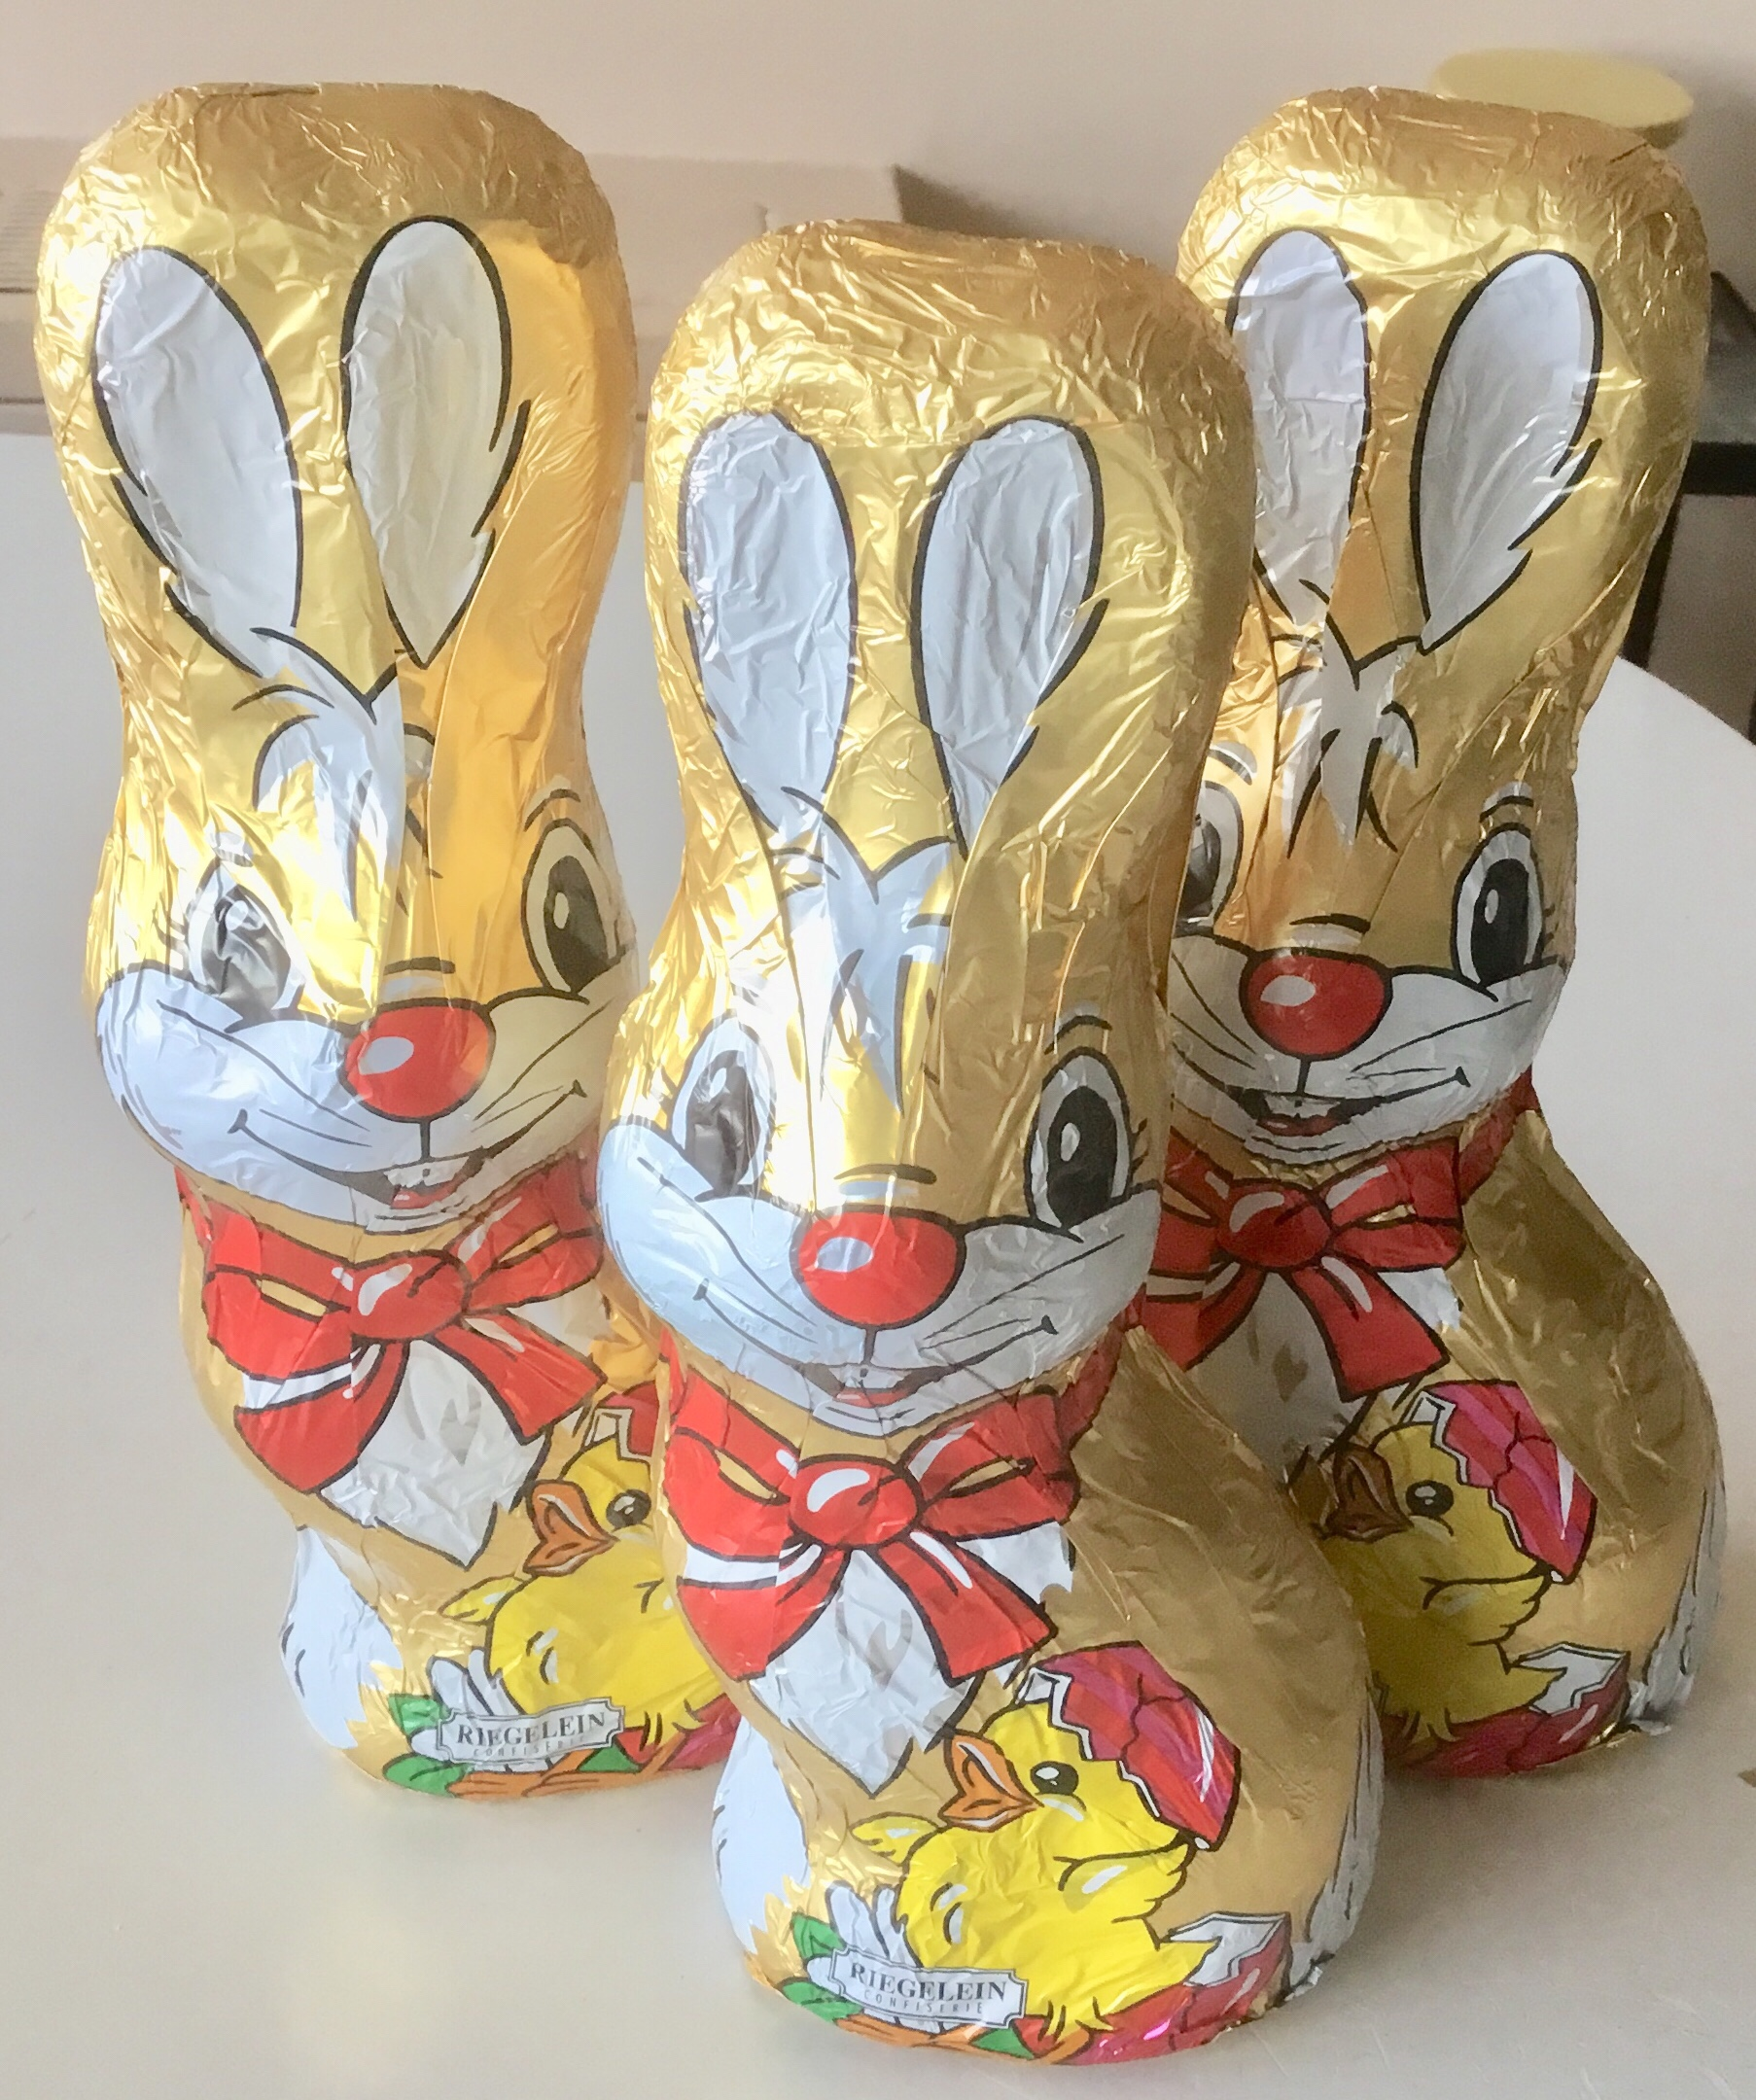 Lapin de Pâques is French for Easter Bunny